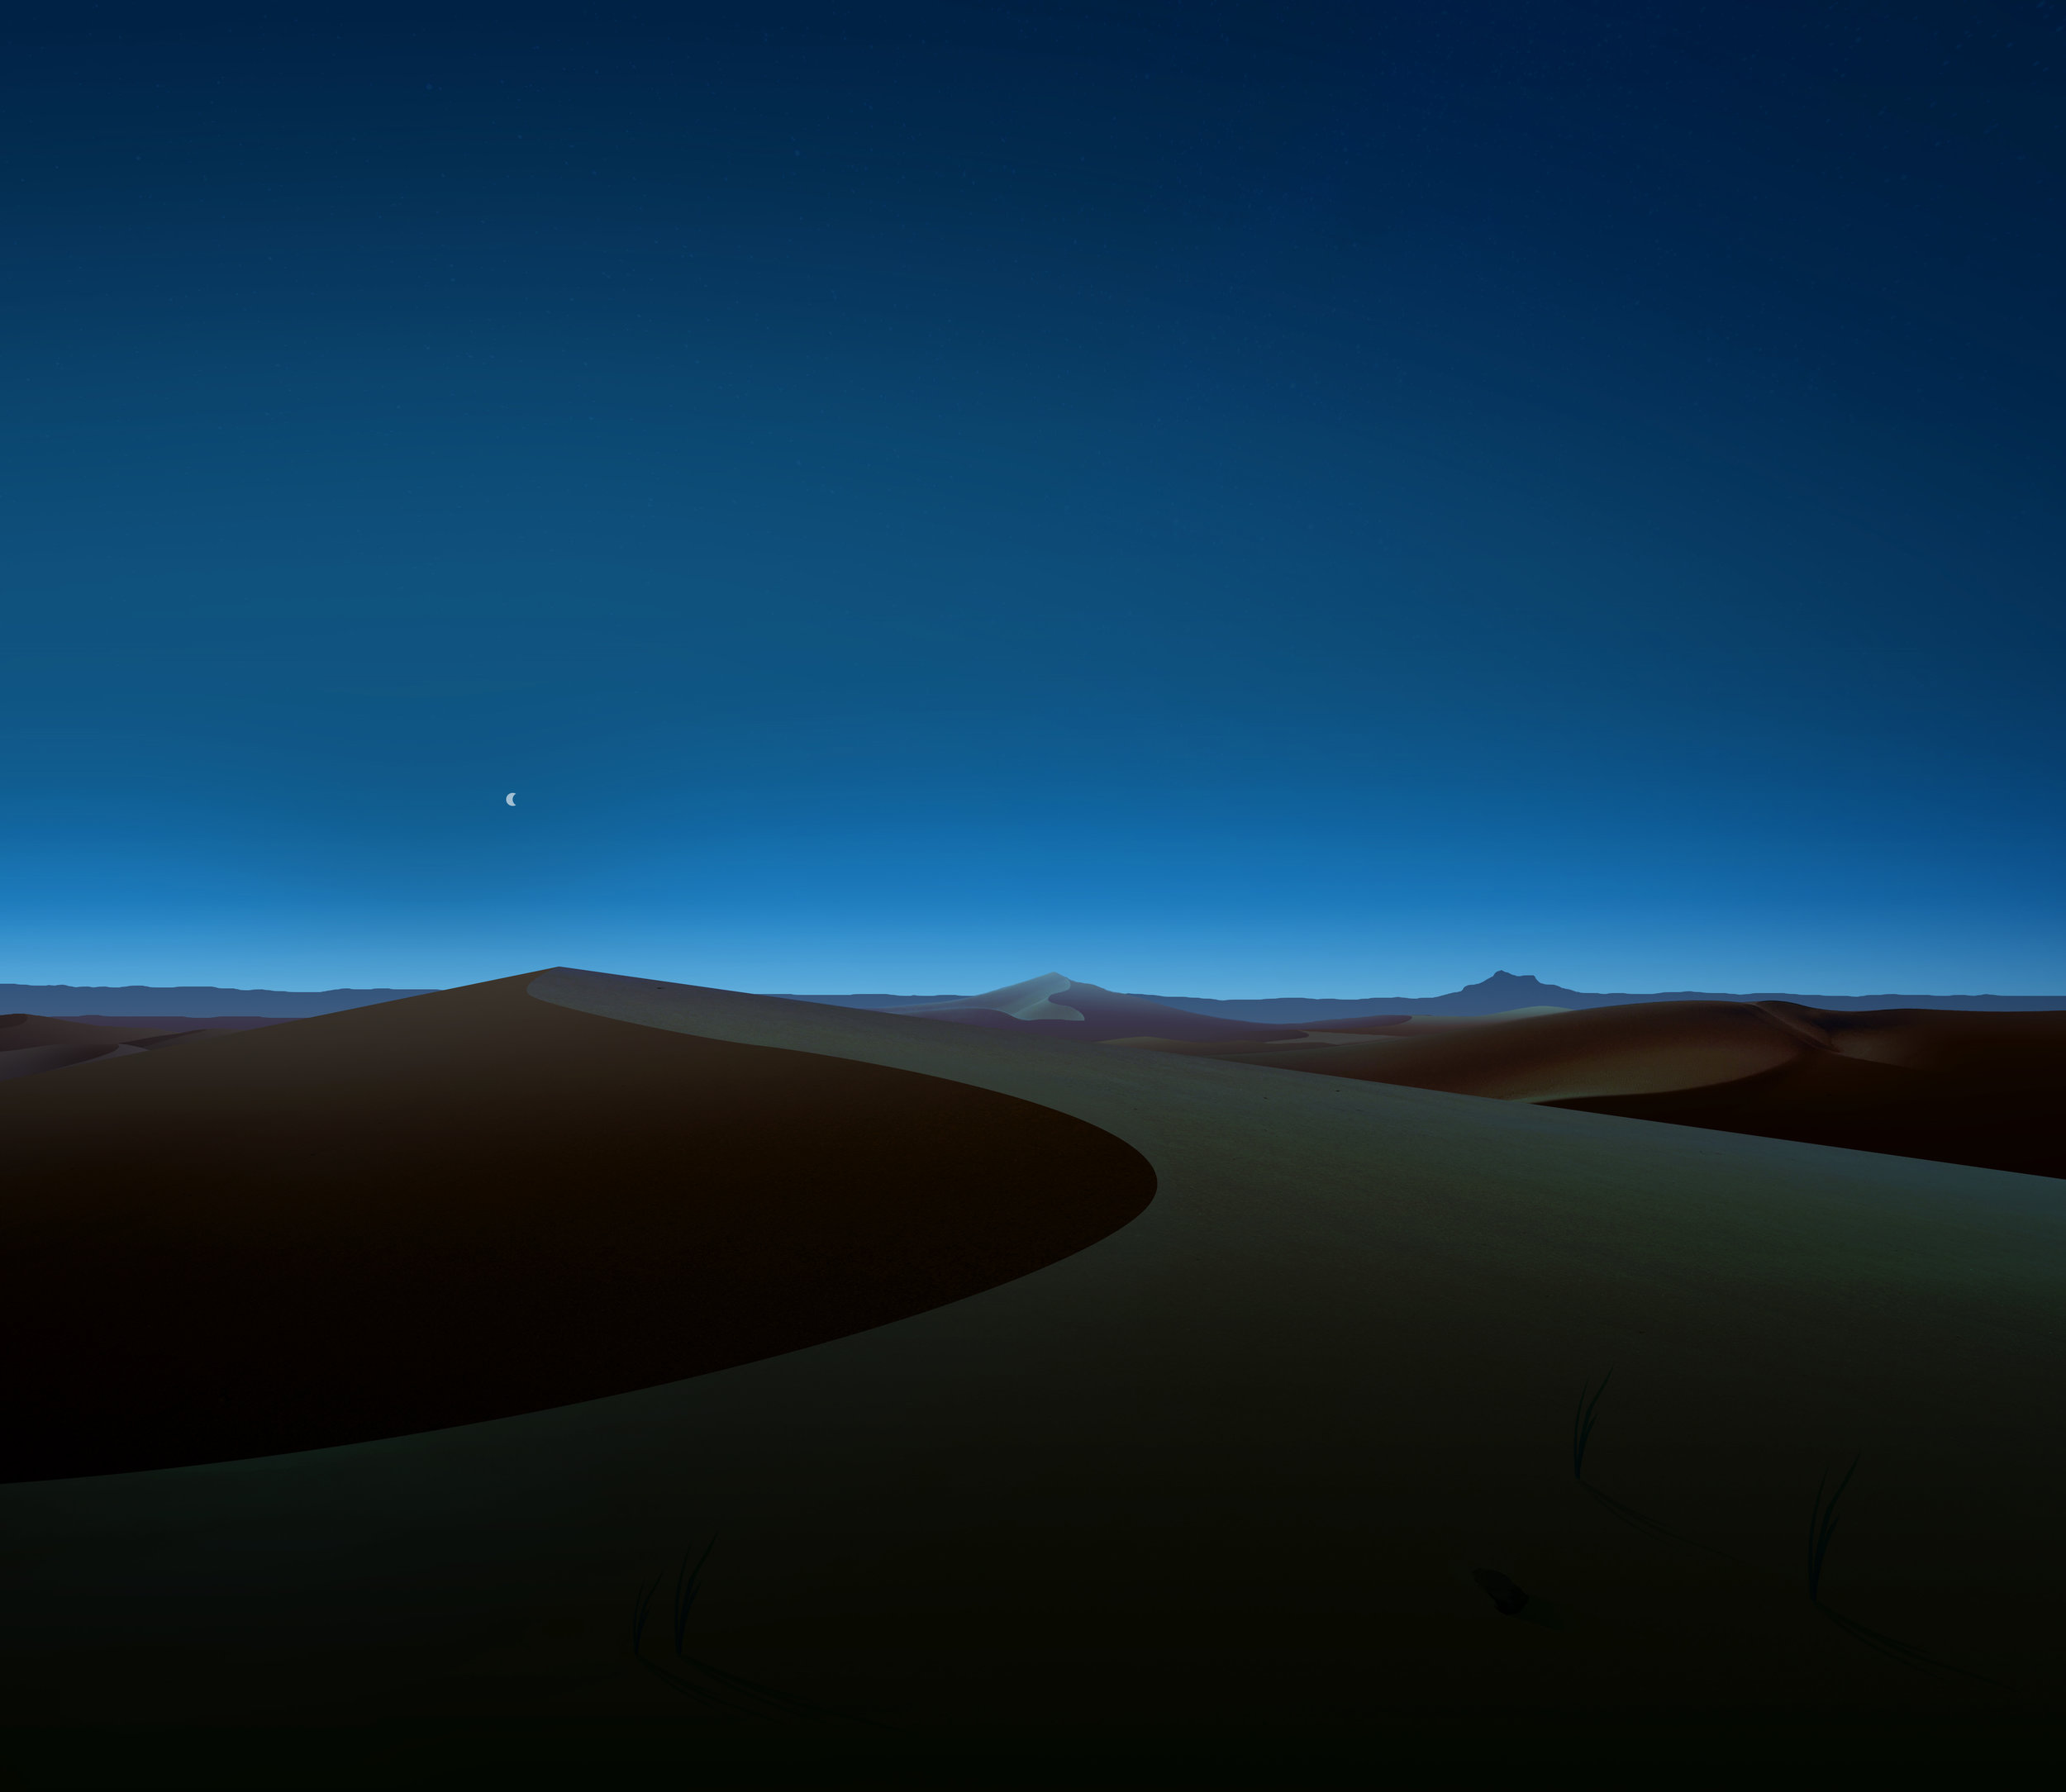 Desert_03Night.jpg